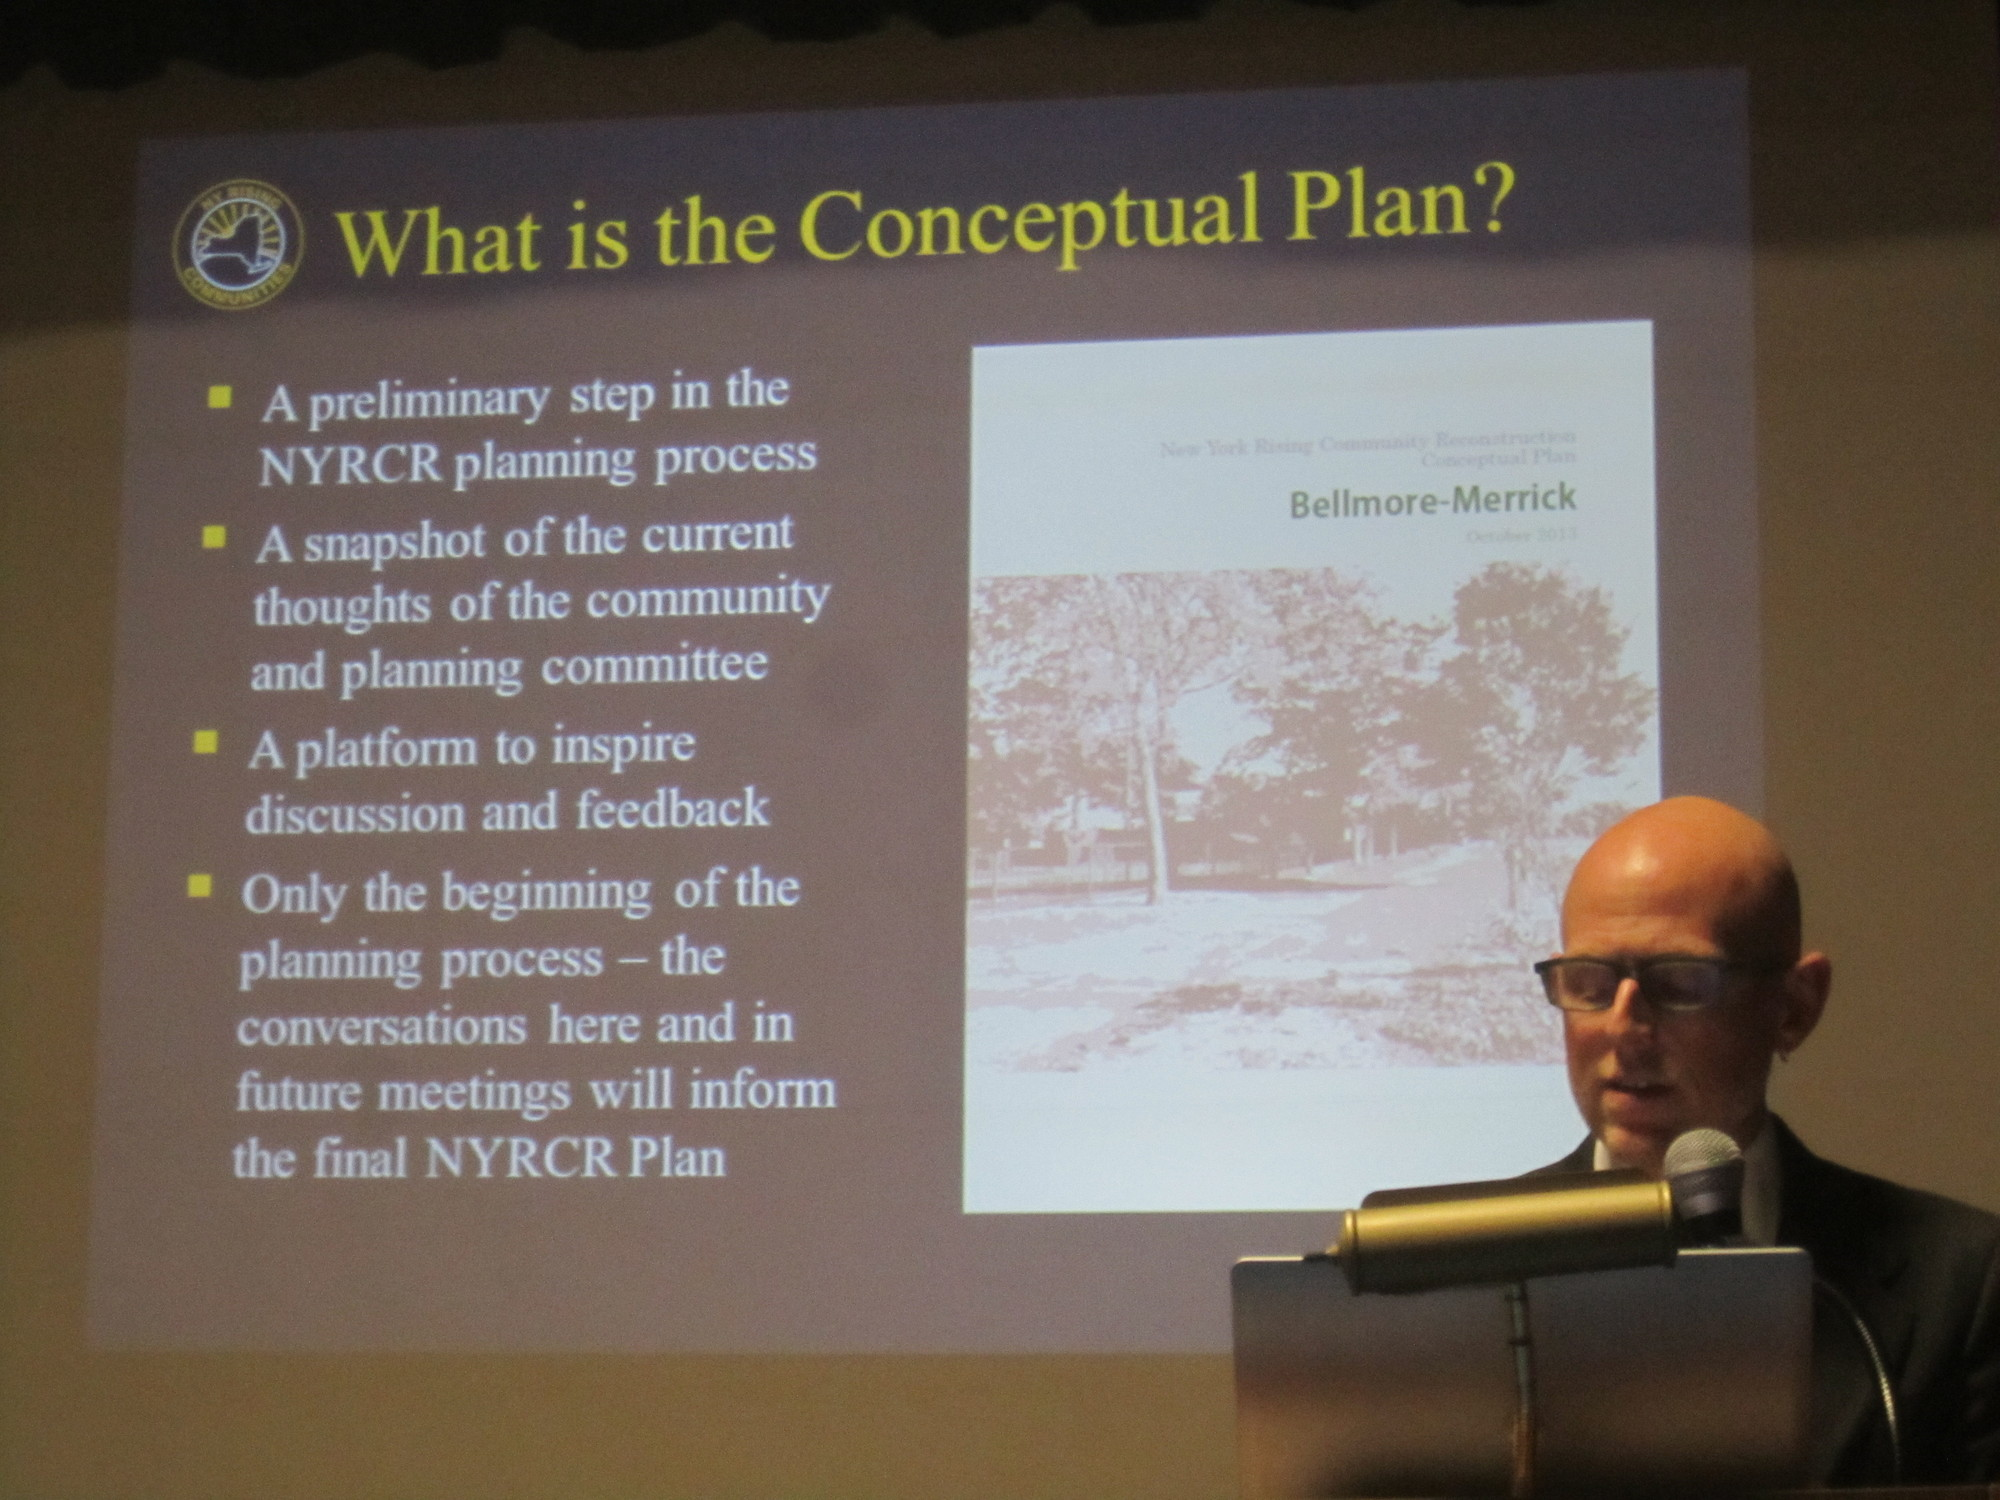 Trent Lethco, a consultant with Ove Arup & Partners, P.C, addressed an earlier meeting of the New York Rising Community Reconstruction Program's Bellmore-Merrick Planning Committee on Nov. 20, 2013.